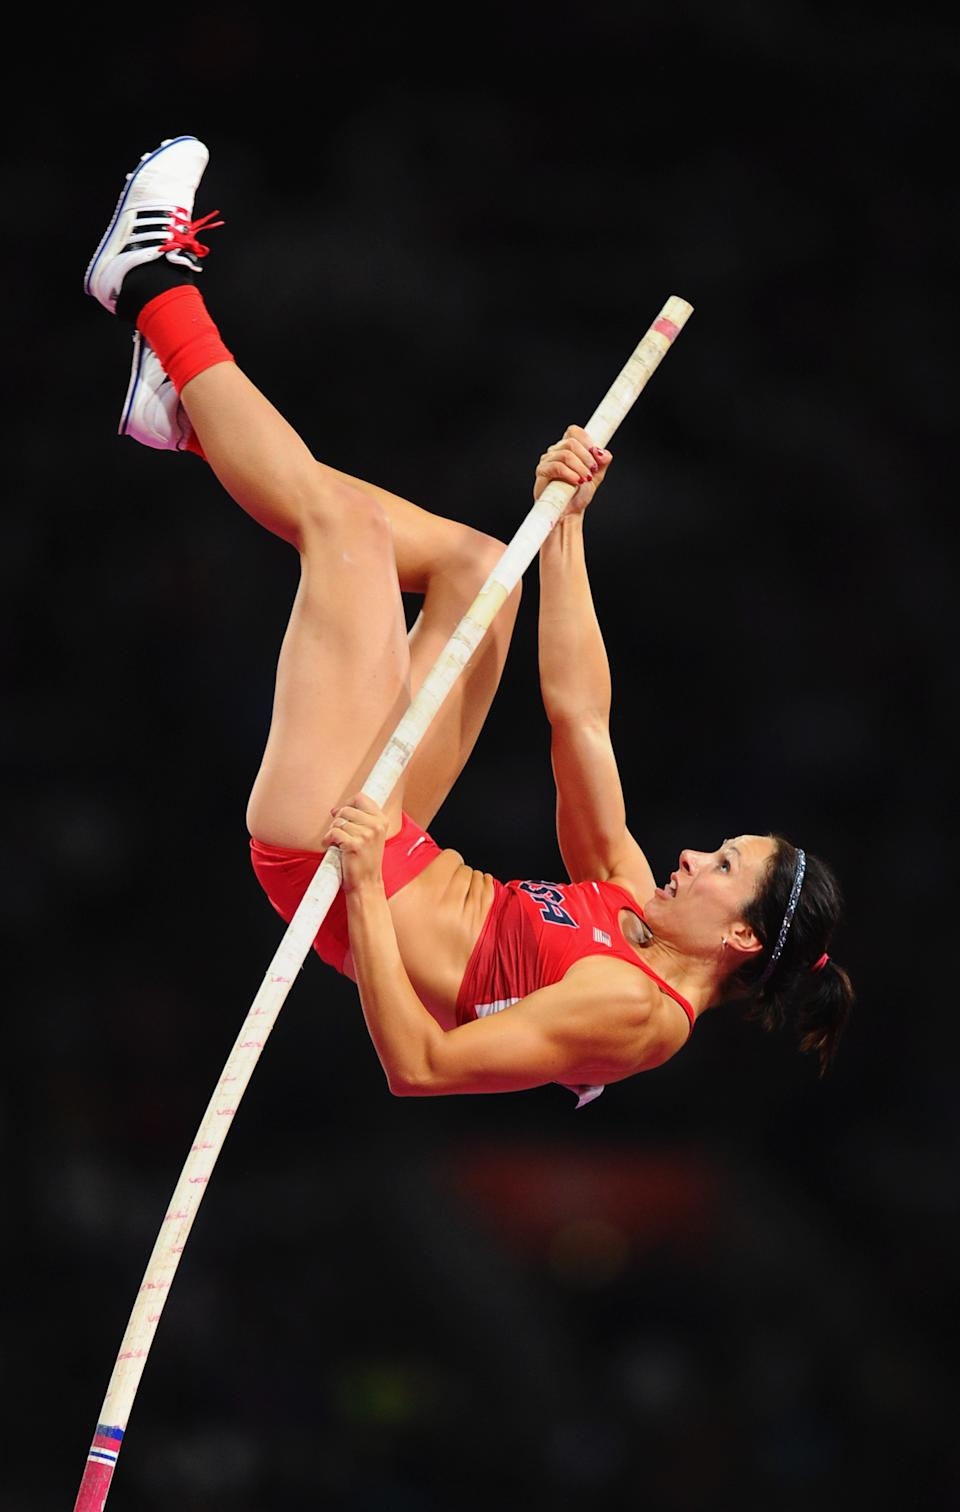 Jennifer Suhr of the United States competes in the Women's Pole Vault final on Day 10 of the London 2012 Olympic Games at the Olympic Stadium on August 6, 2012 in London, England. (Photo by Mike Hewitt/Getty Images)